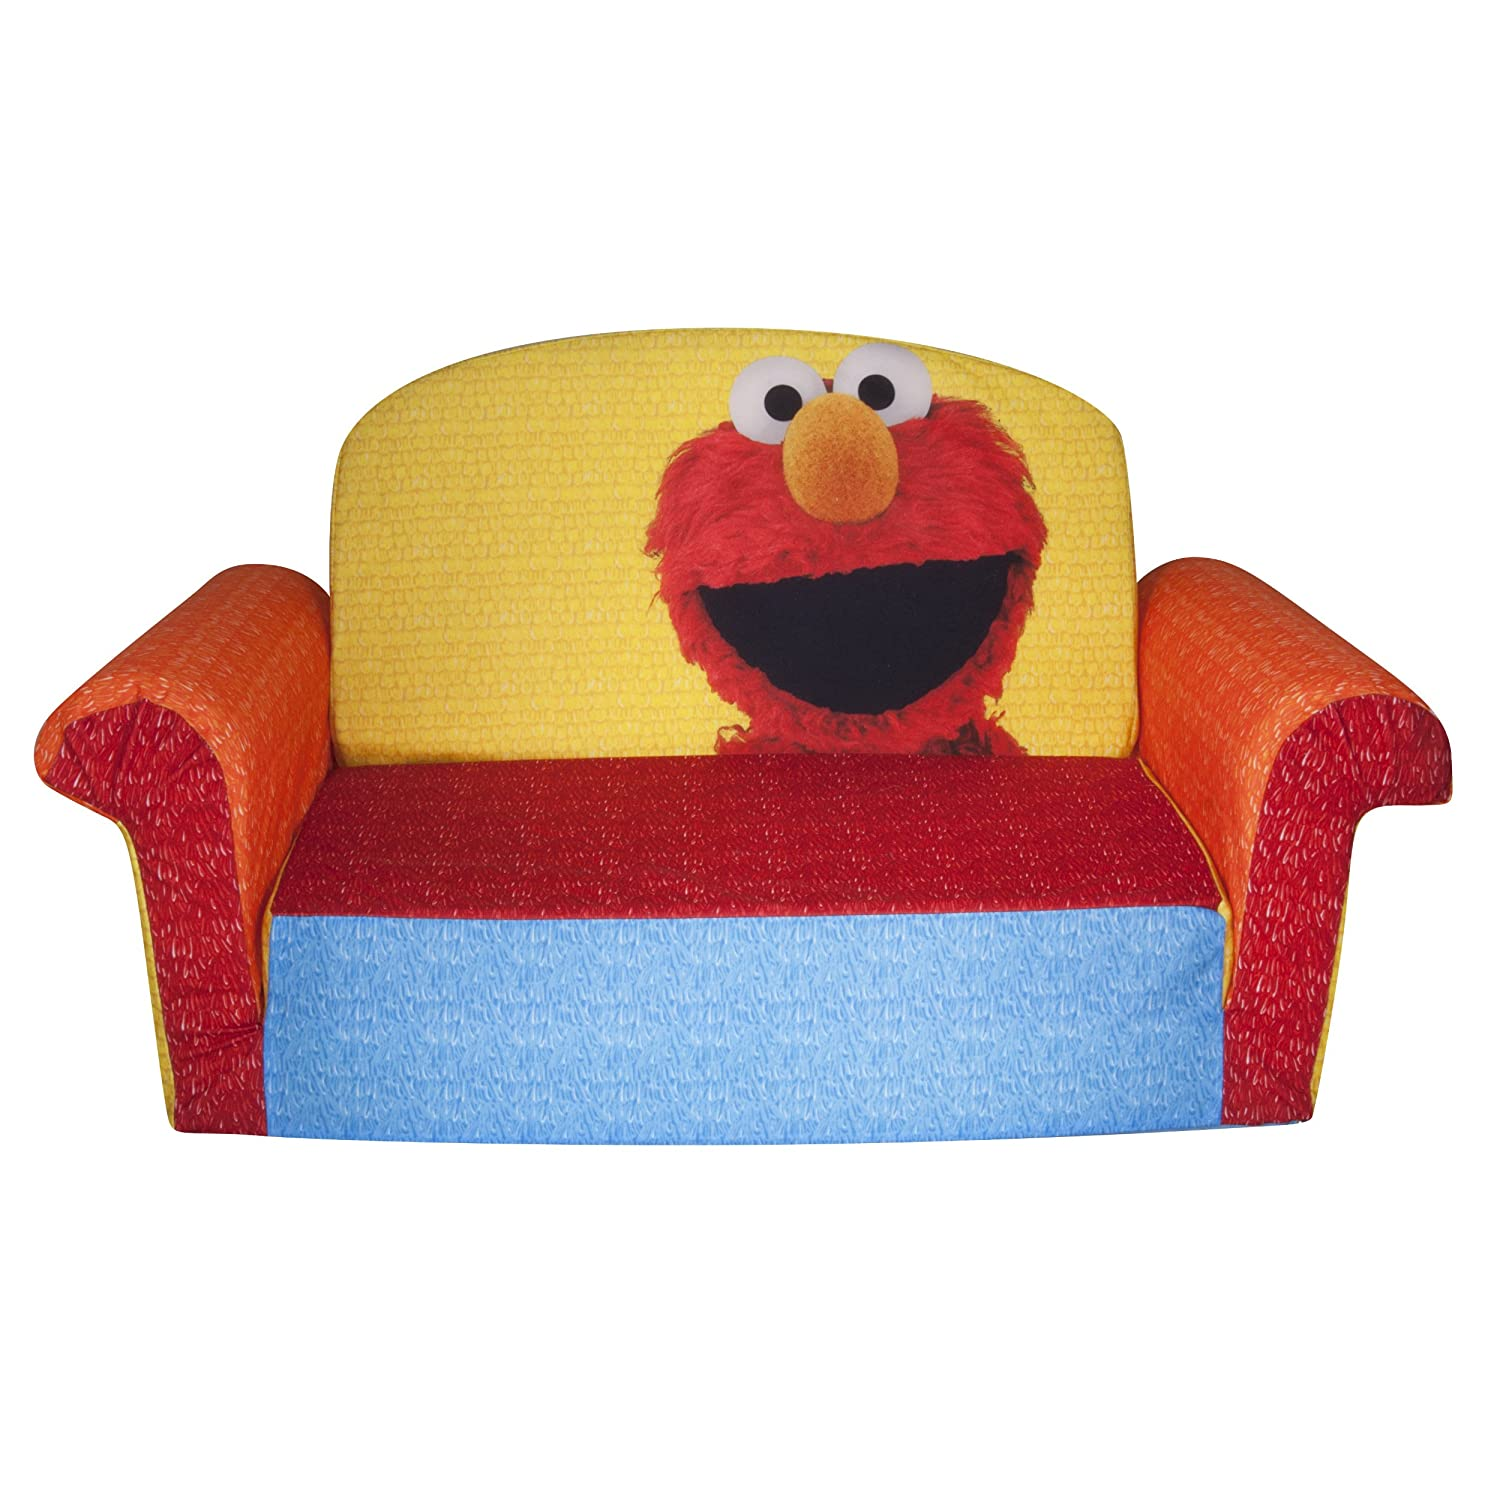 Marshmallow Furniture, Children's 2 in 1 Flip Open Foam Sofa, Sesame Street's Elmo, by Spin Master